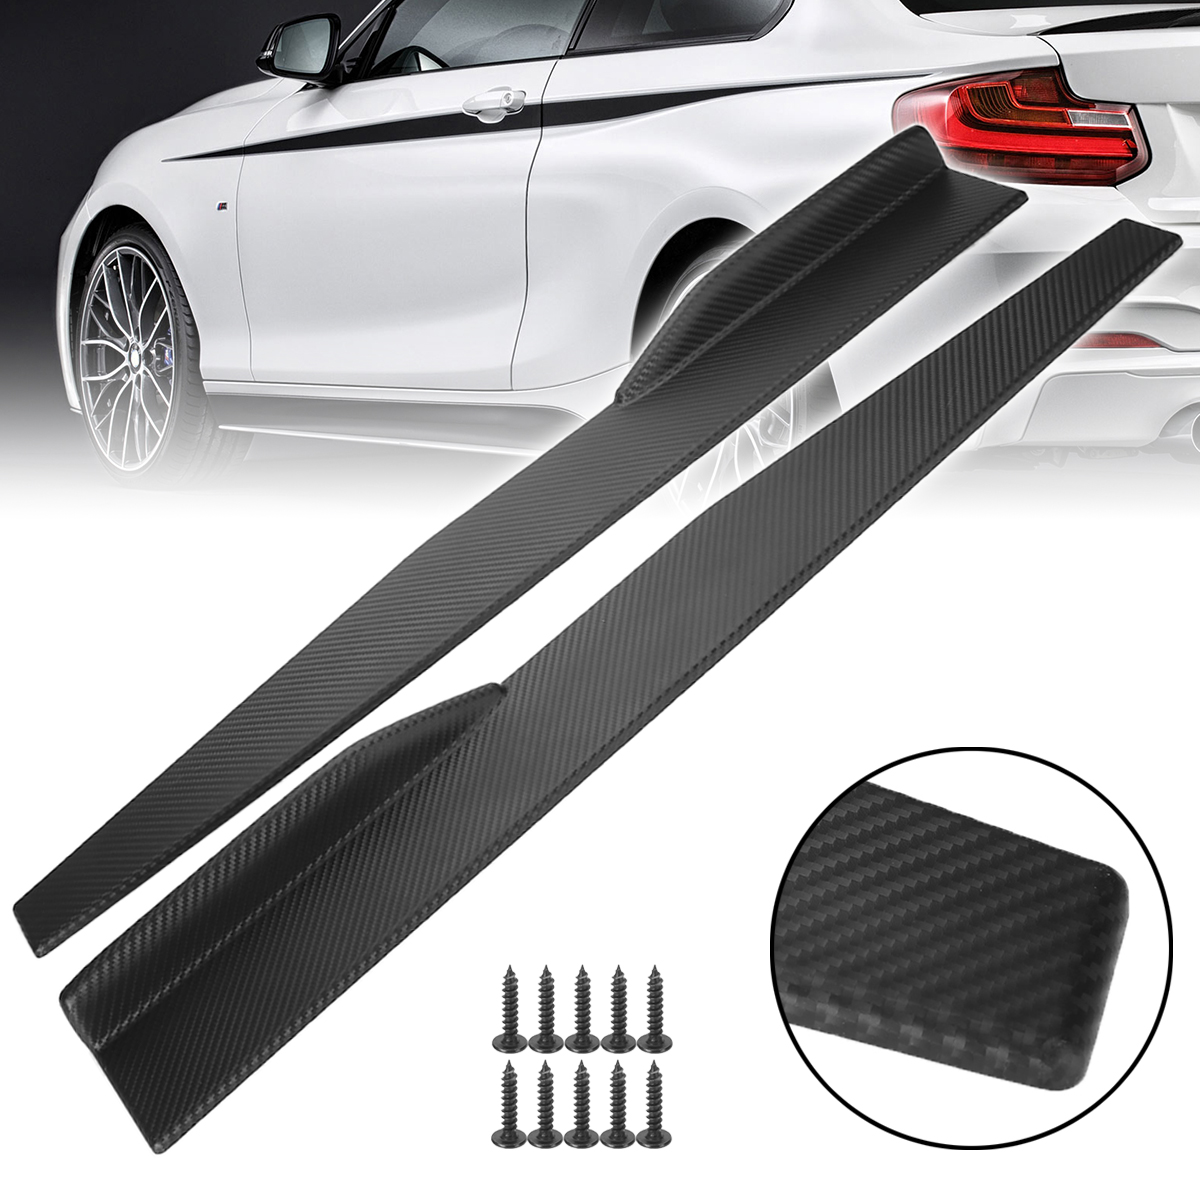 Mayitr 1 Pair 74.5cm Universal Car Side Skirt Rocker Splitters Carbon Fiber Winglet Wings Diffuser Bumpers for Auto Accessories